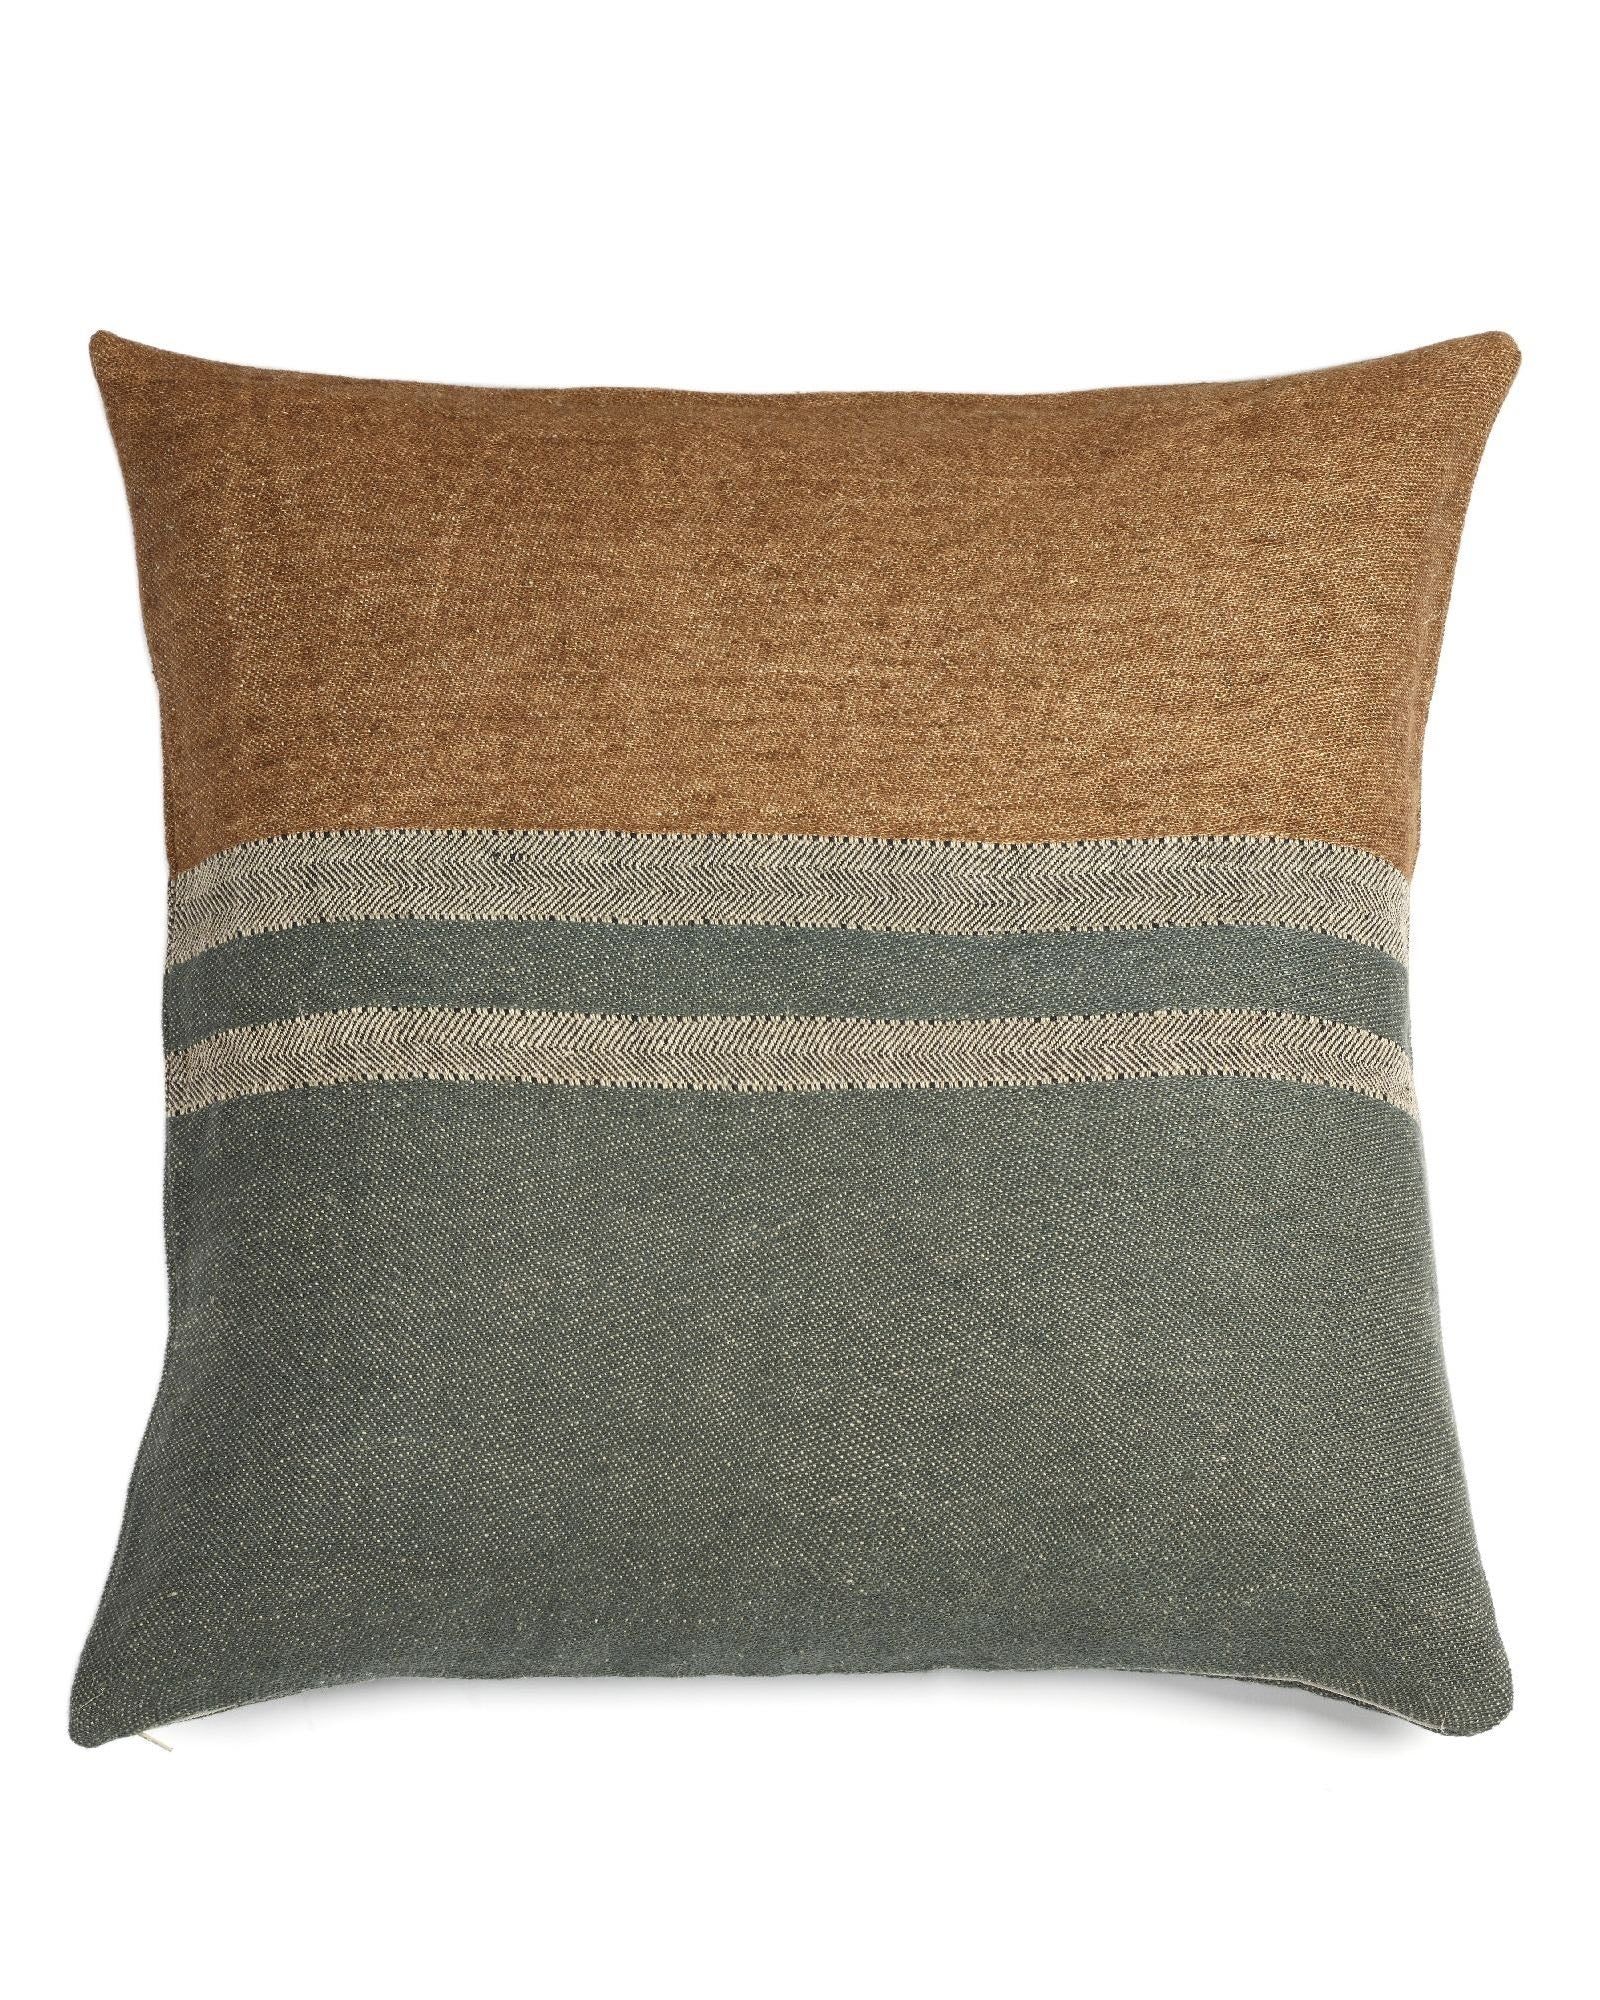 The Belgian Pillow, Alouette